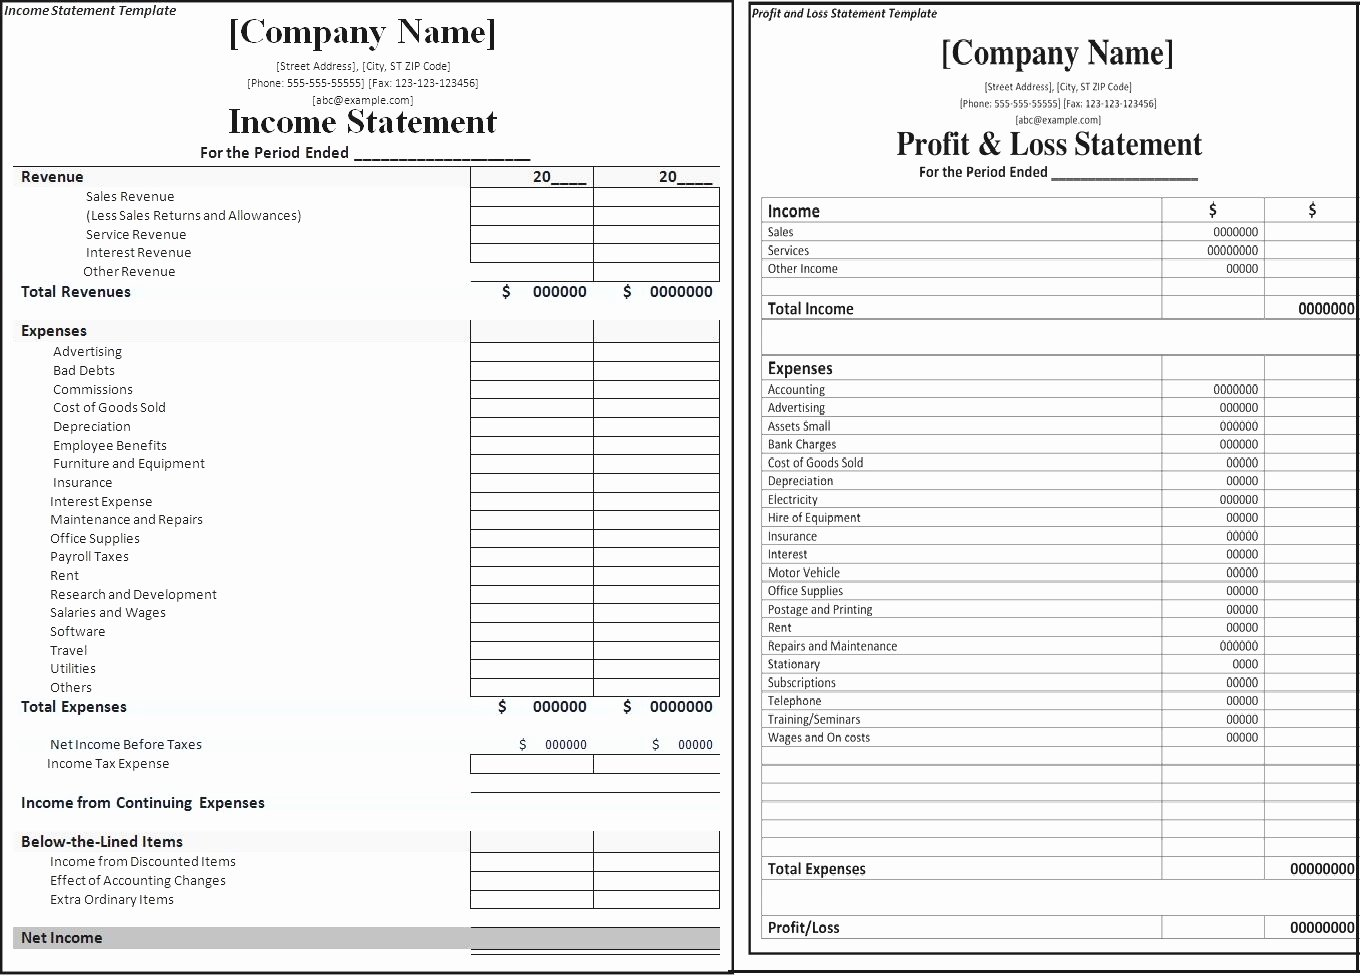 Blank Income Statement Template Best Of Blank Profit and Loss Statement Mughals